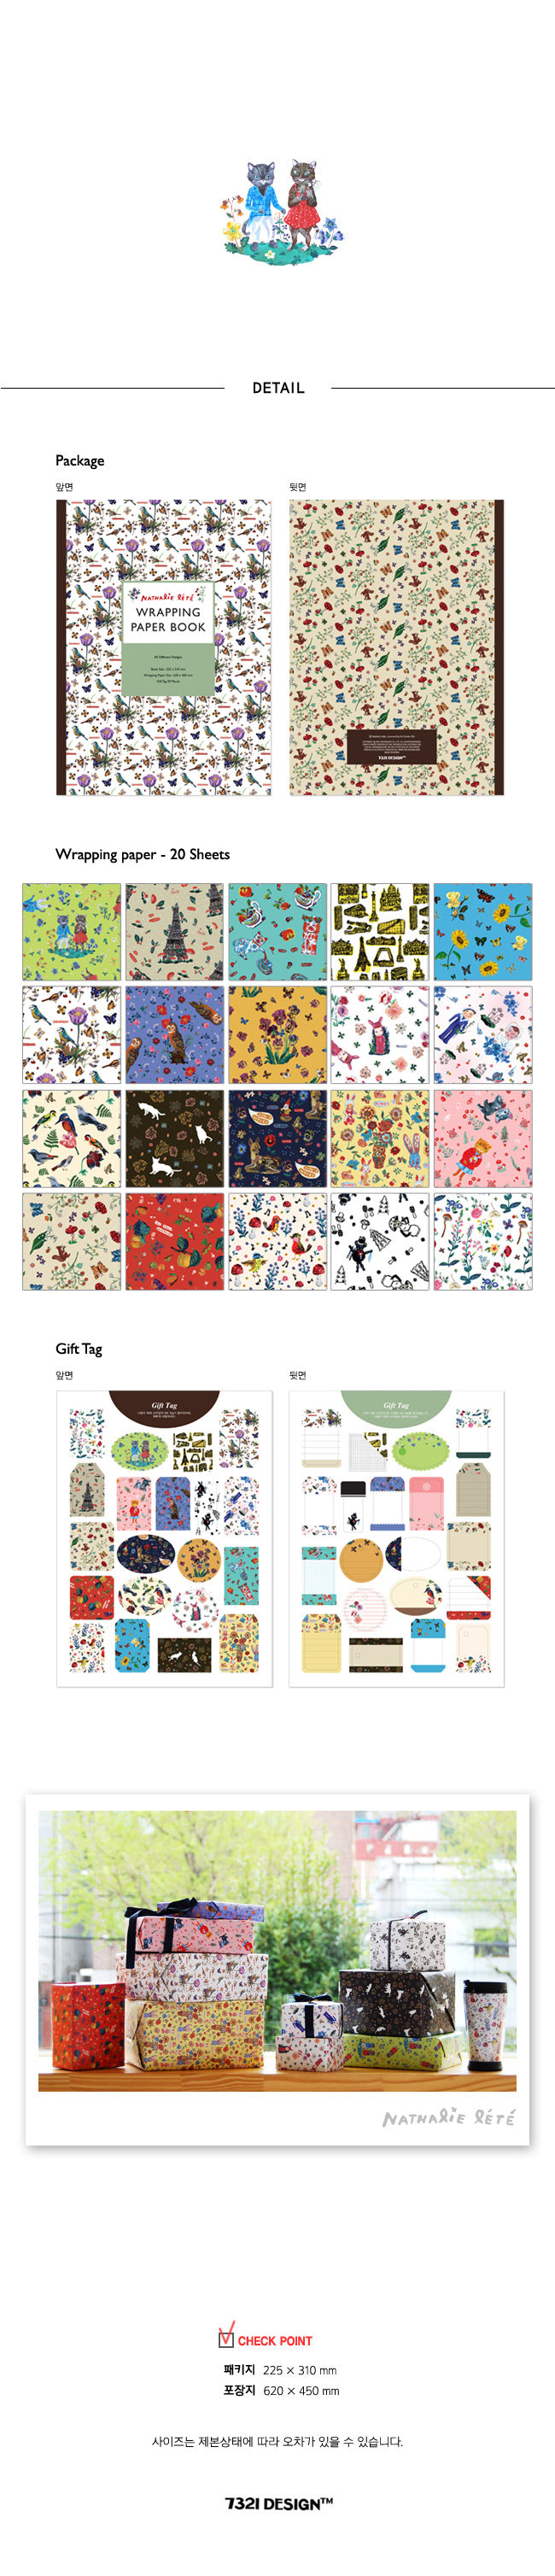 7321Design x Nathalie Lété Illustrated Patterned Wrapping Deco Paper Book (Korean Stationery UK)